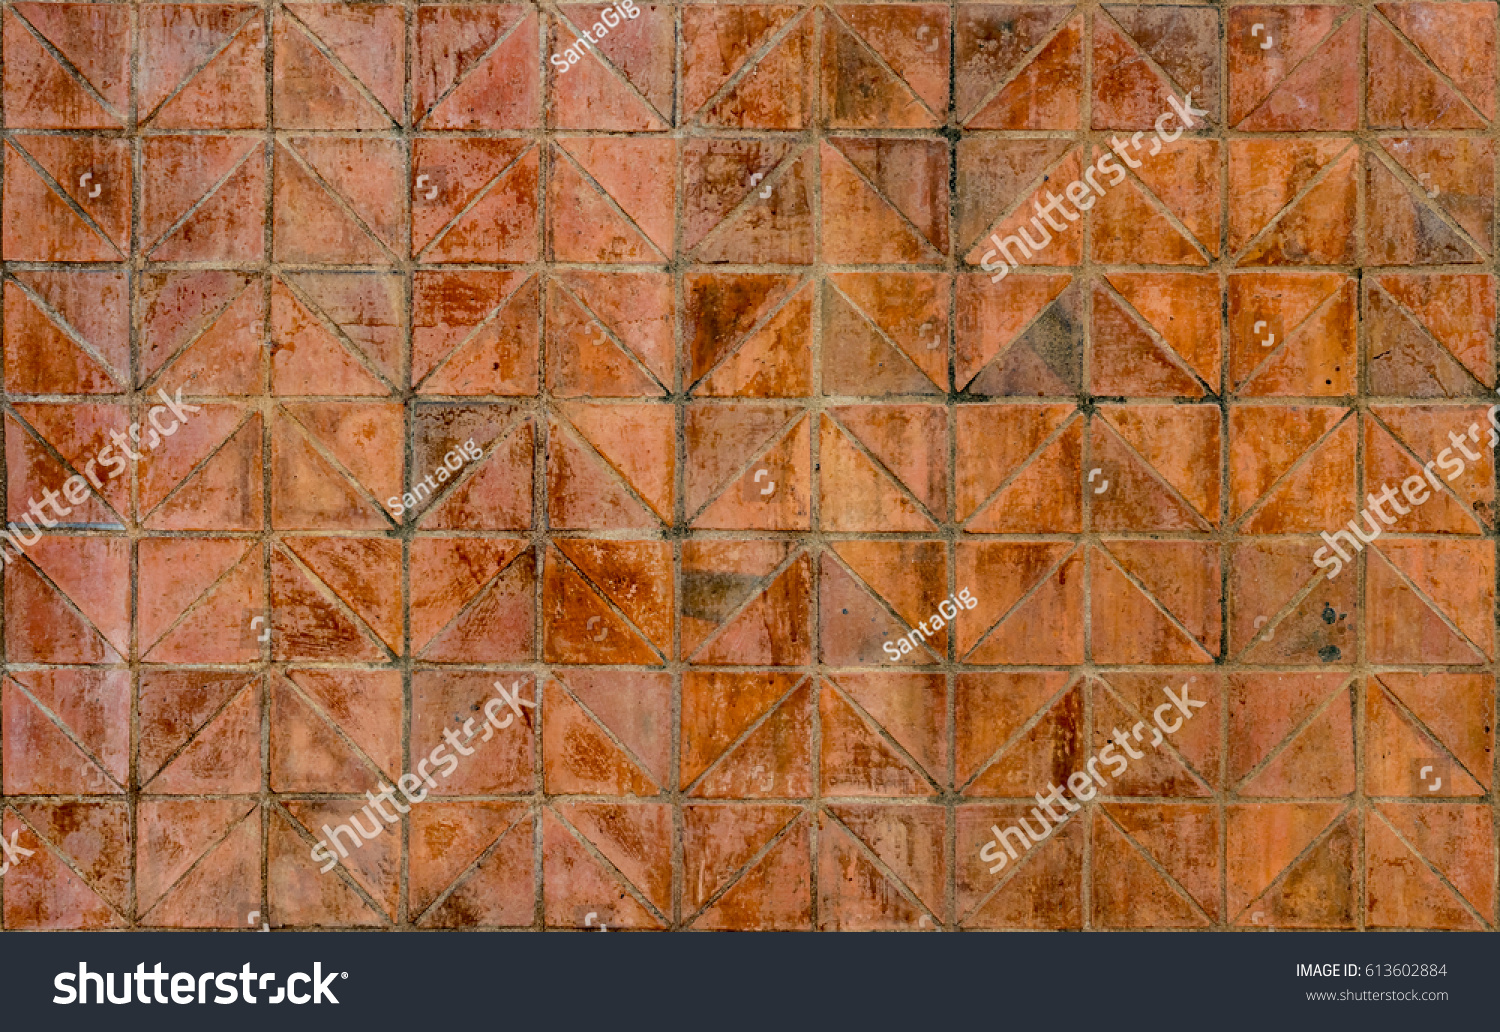 Ceramic tile outlet covers choice imagesplendi subway tile ideas handmade ceramic tiles uk image collections dailygadgetfo Gallery